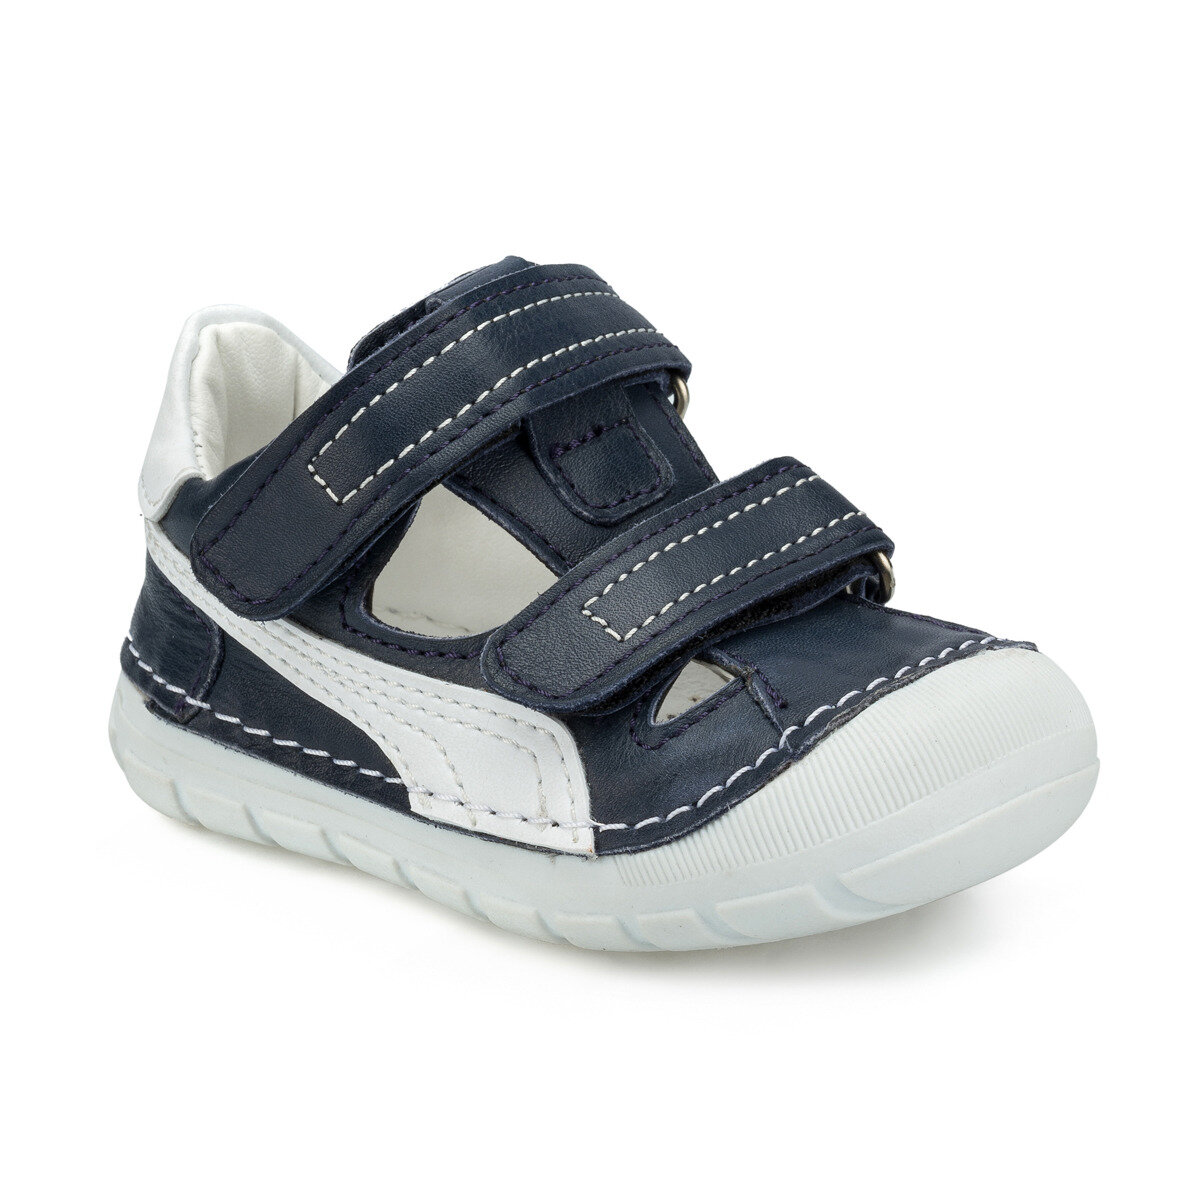 FLO 512205.I Navy Blue Male Child Sneaker Shoes Polaris|  - title=